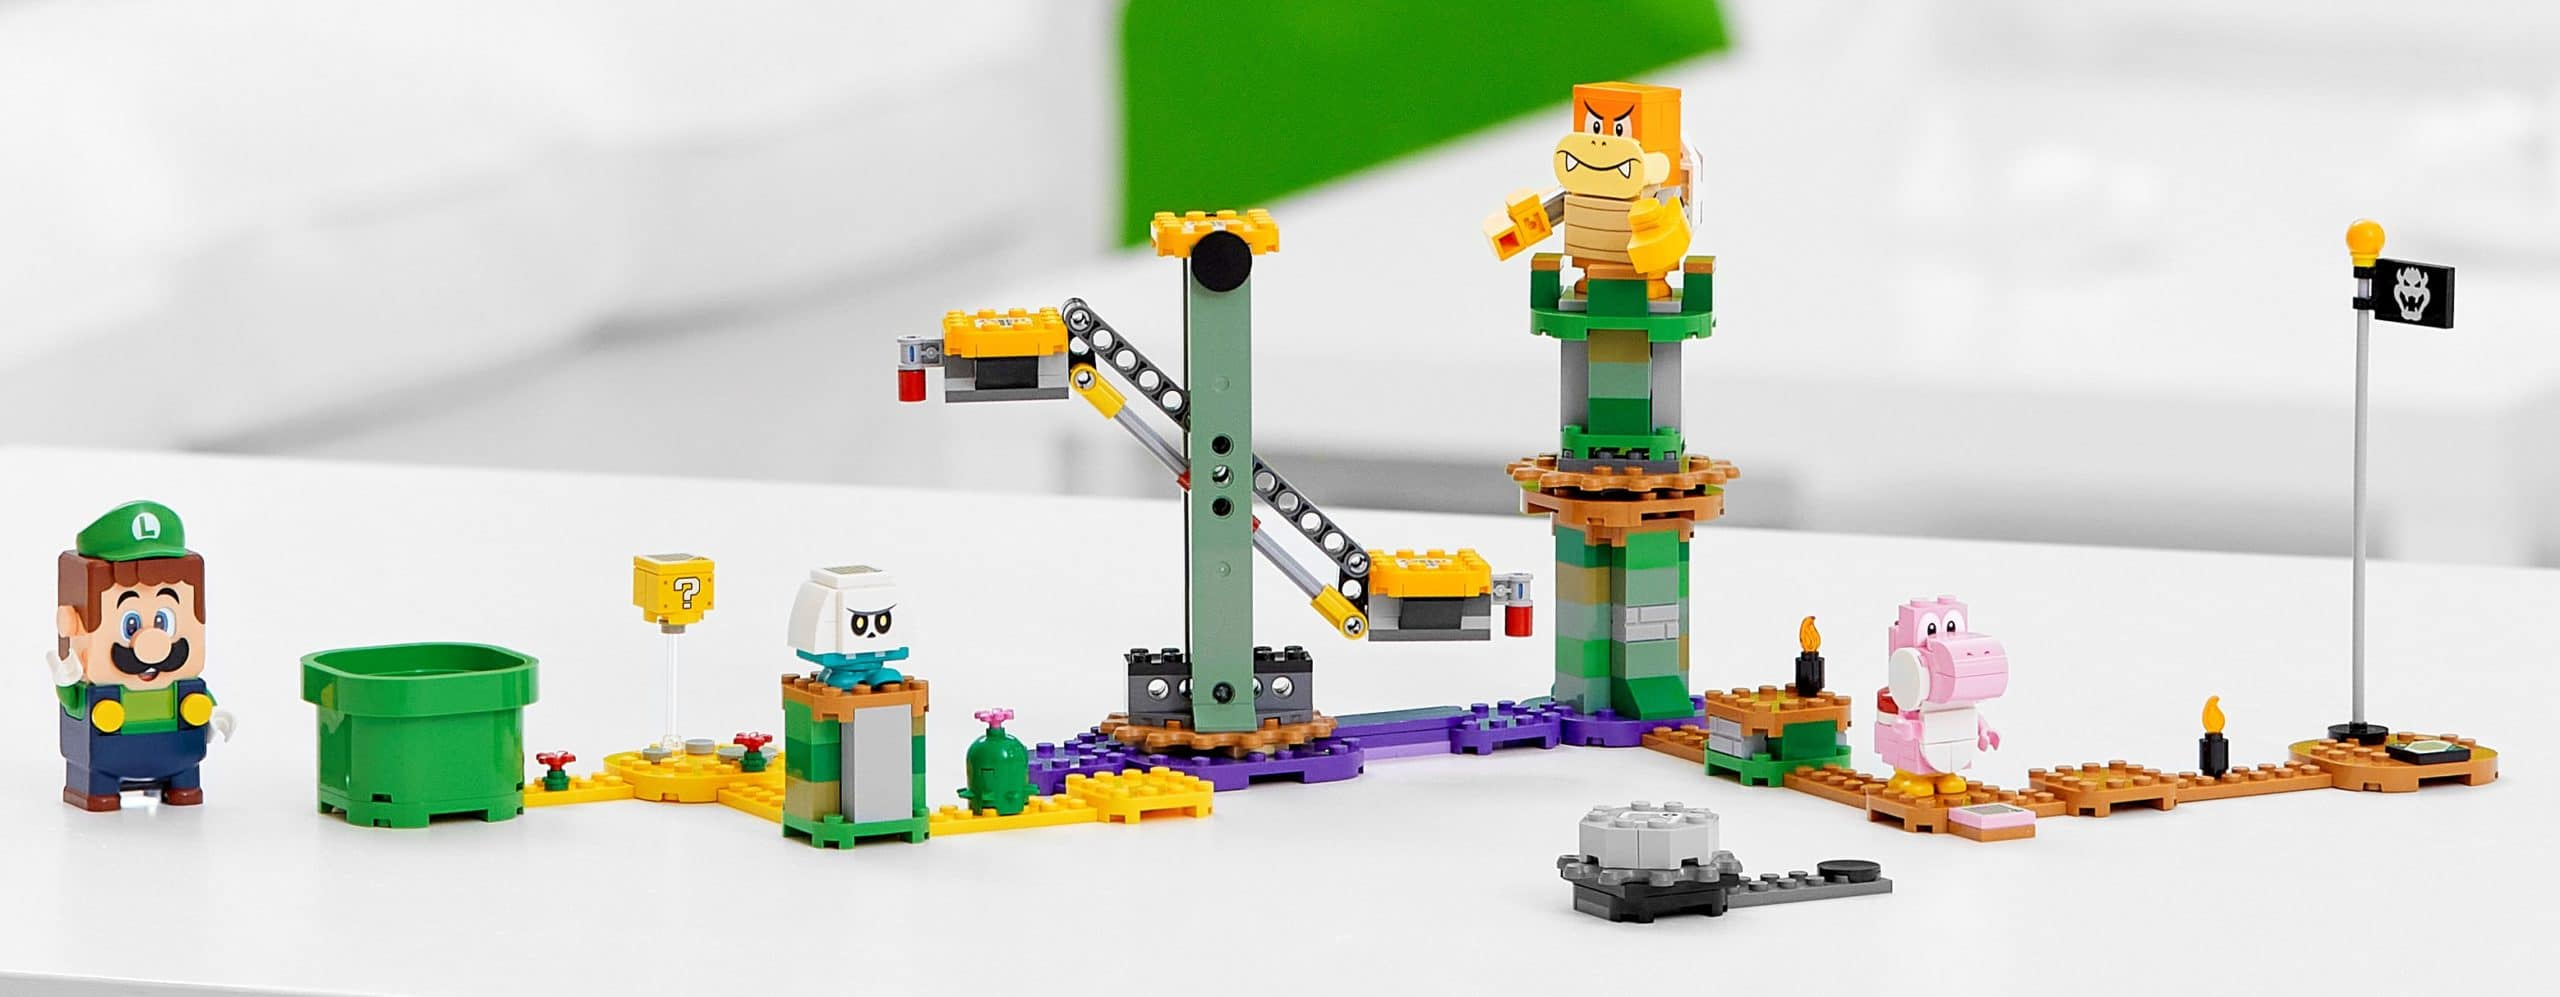 LEGO finally adds an interactive Luigi figure to its Super Mario line 13